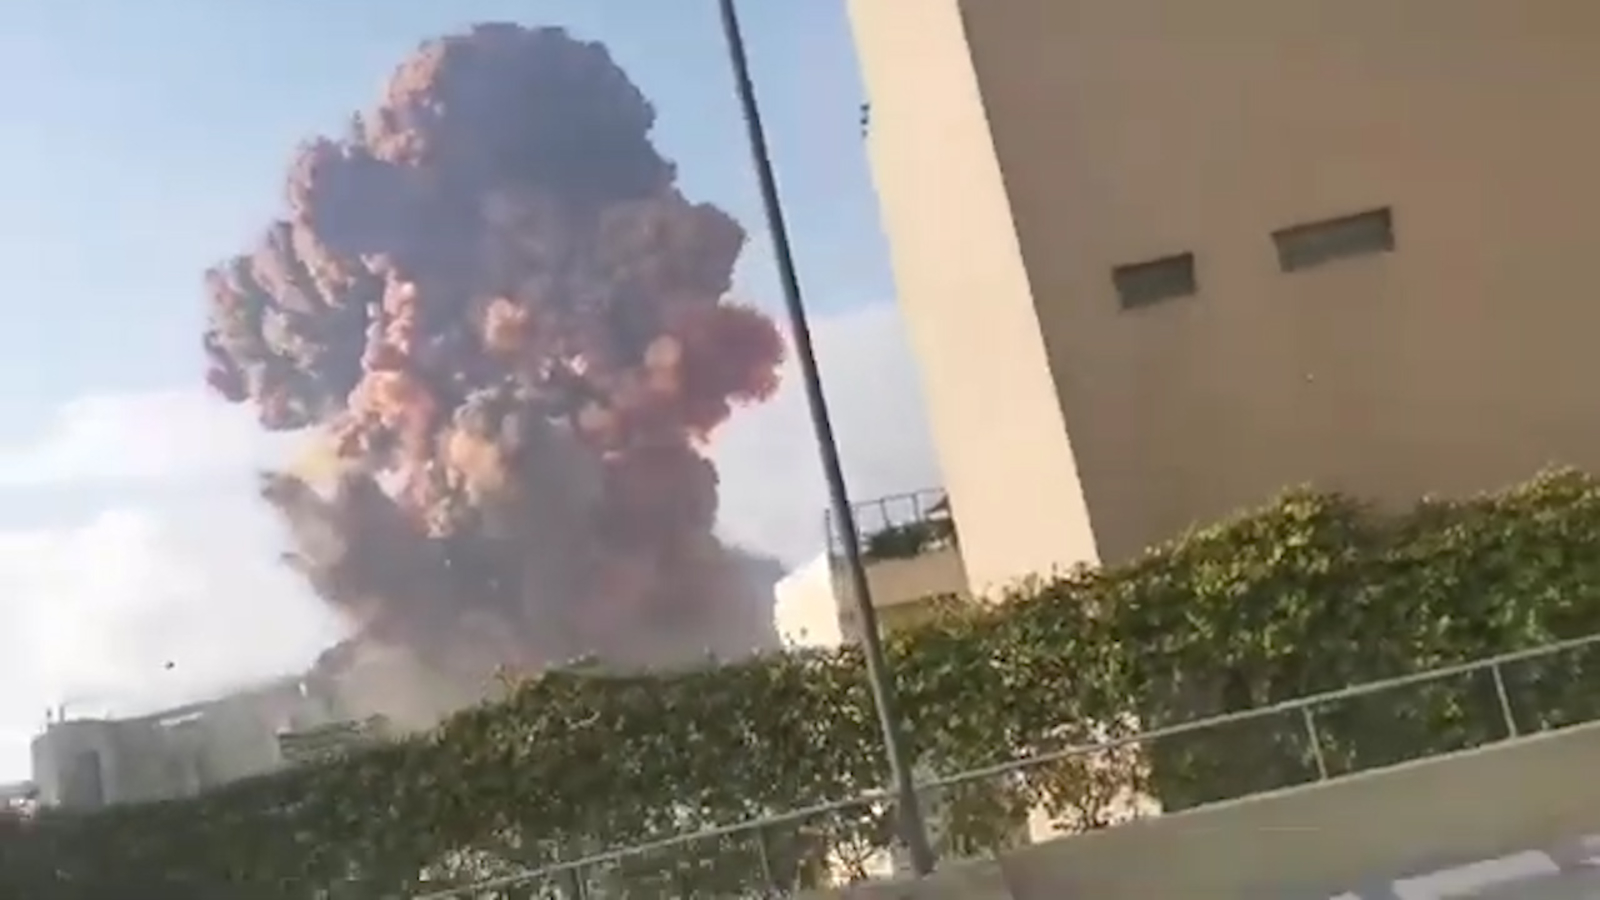 Massive explosion shakes Lebanon's capital leaving at least 70 dead and thousands injured